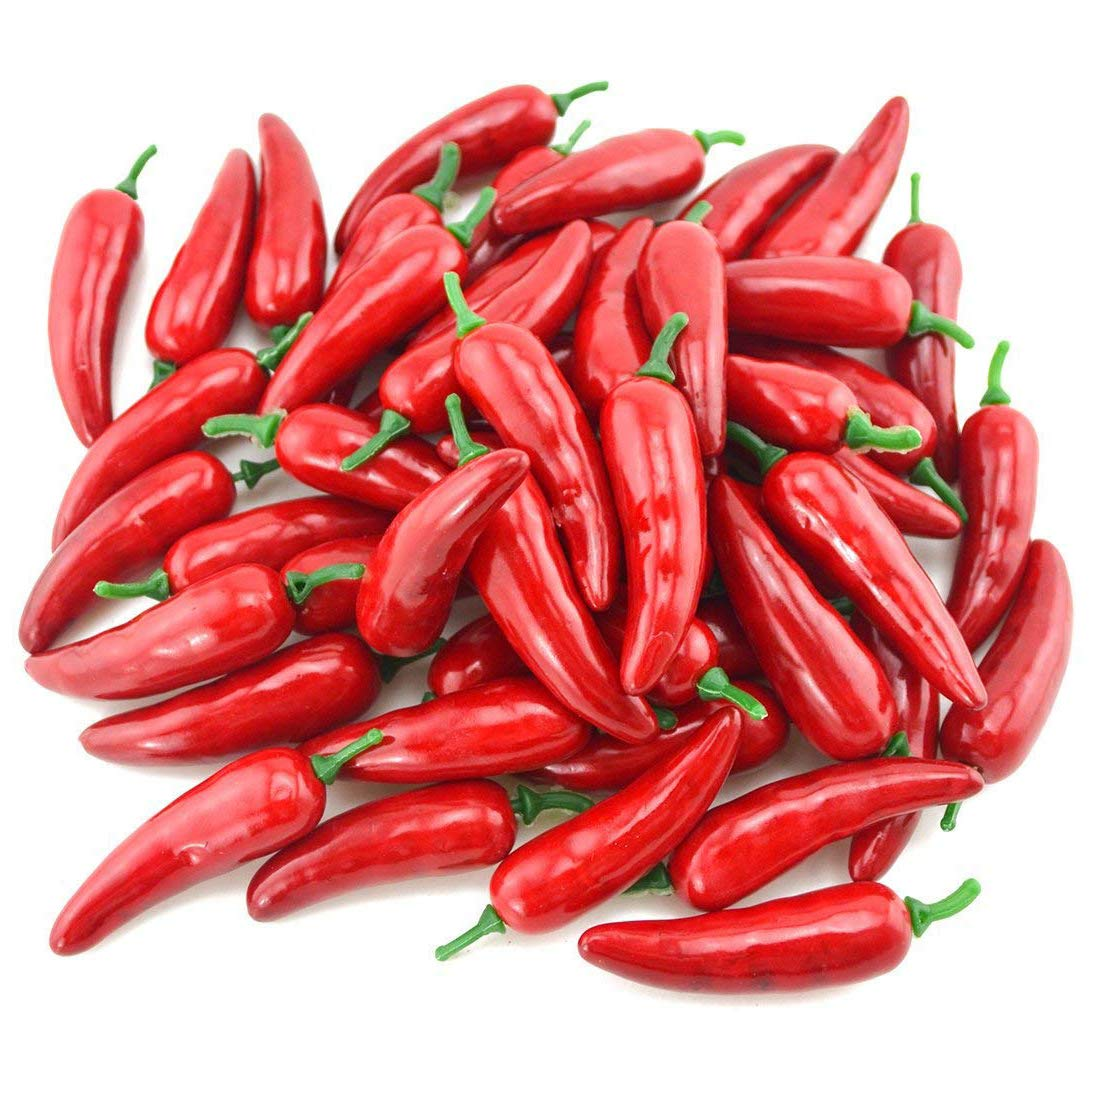 CN-Culture 50 PCS Simulation Artificial Lifelike Fake Vegetable Red Pepper Hot Chili for Home Kitchen Decoration